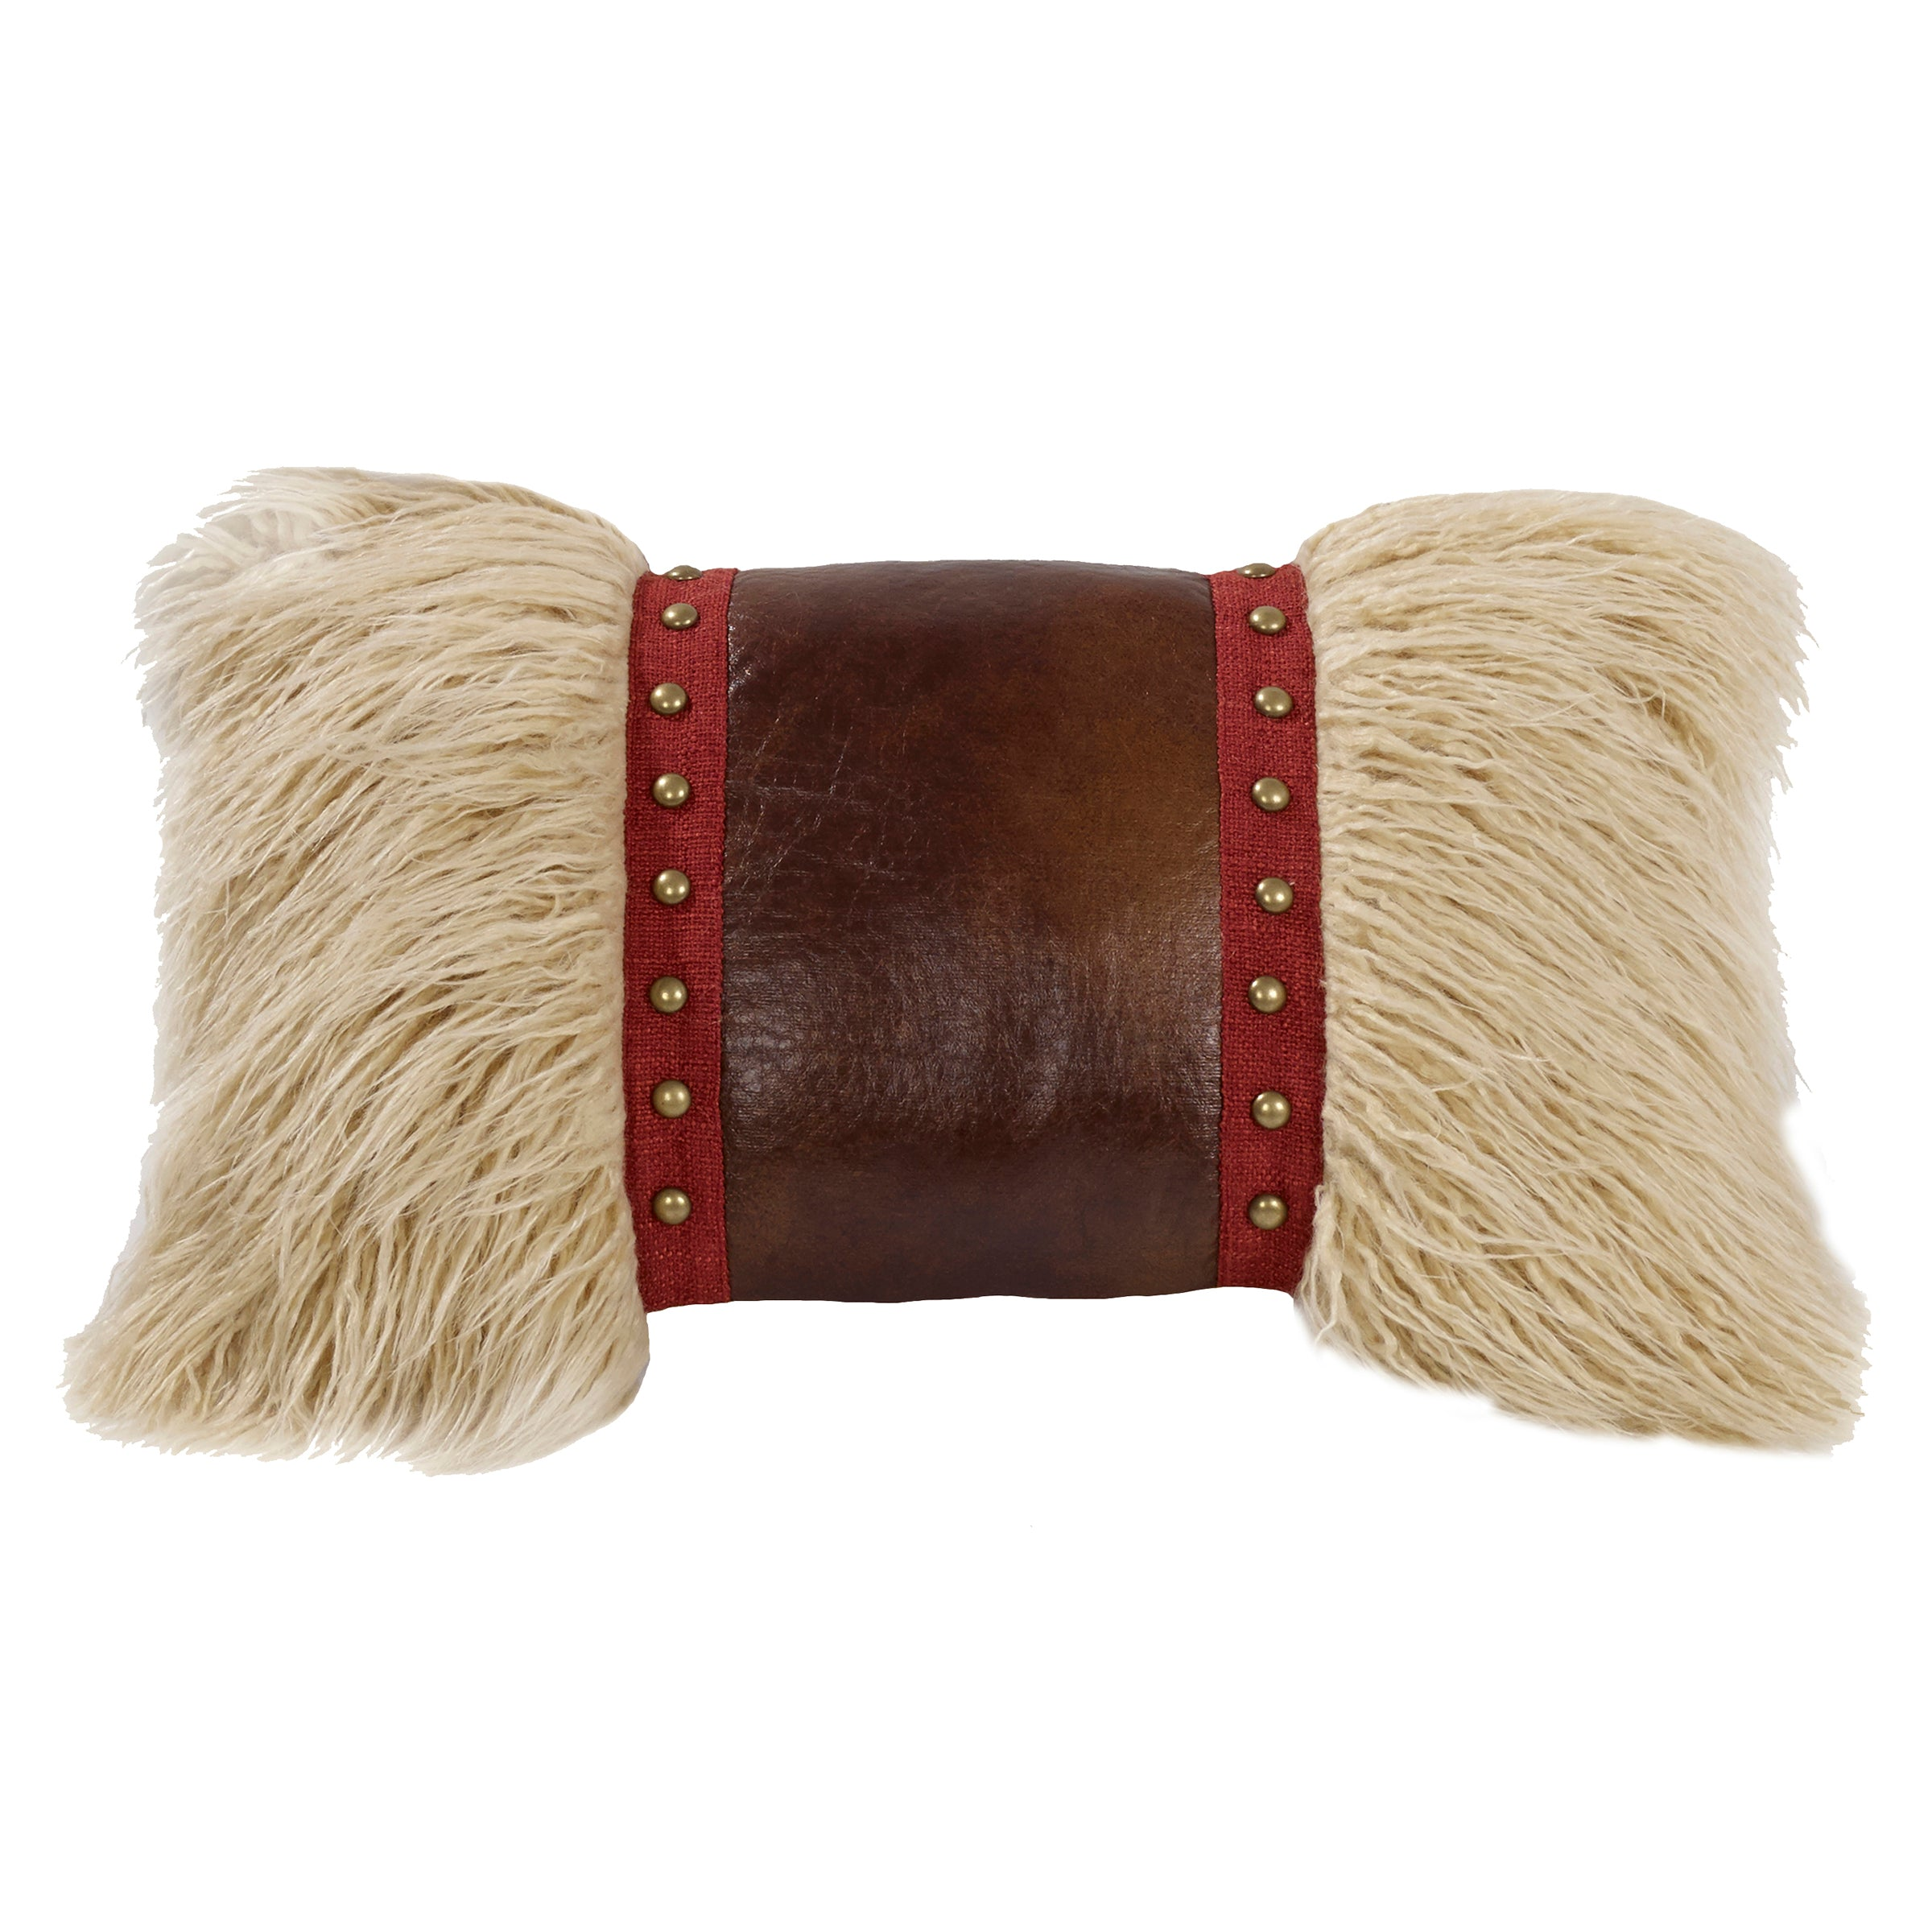 WS4066P8 Ruidoso - Mongolian Fur pillow